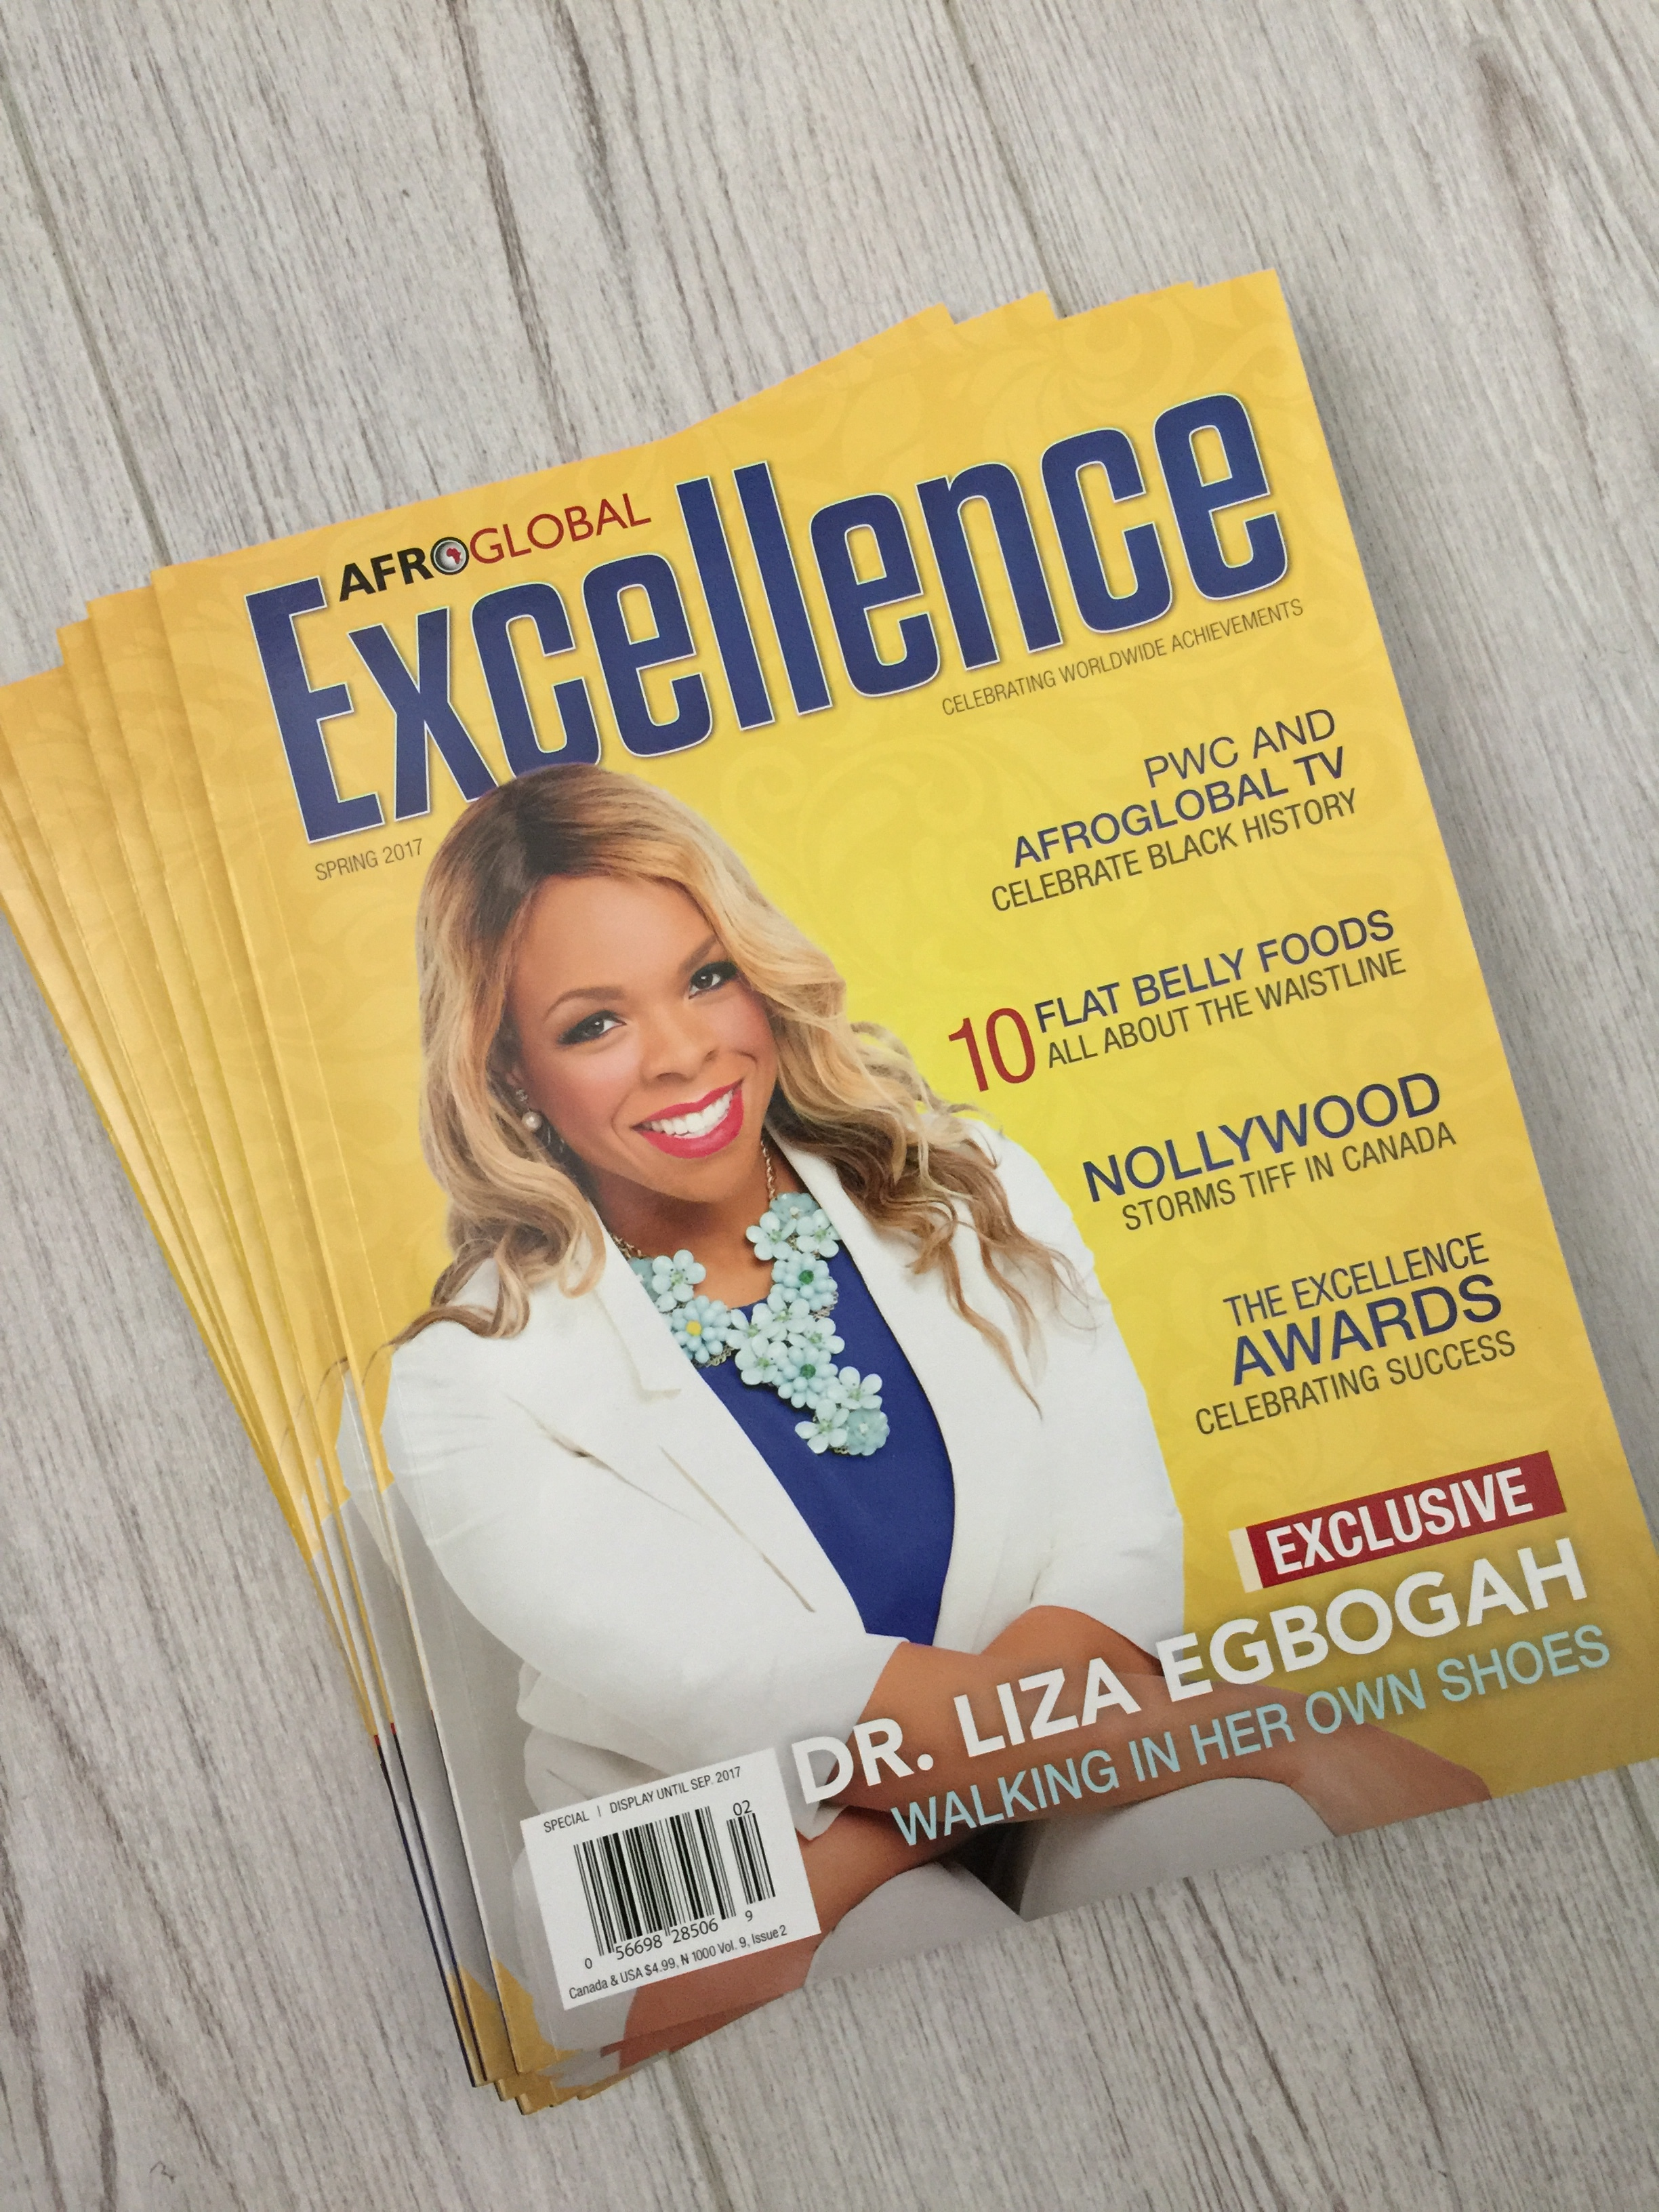 Afroglogal-excellence-dr-Liza